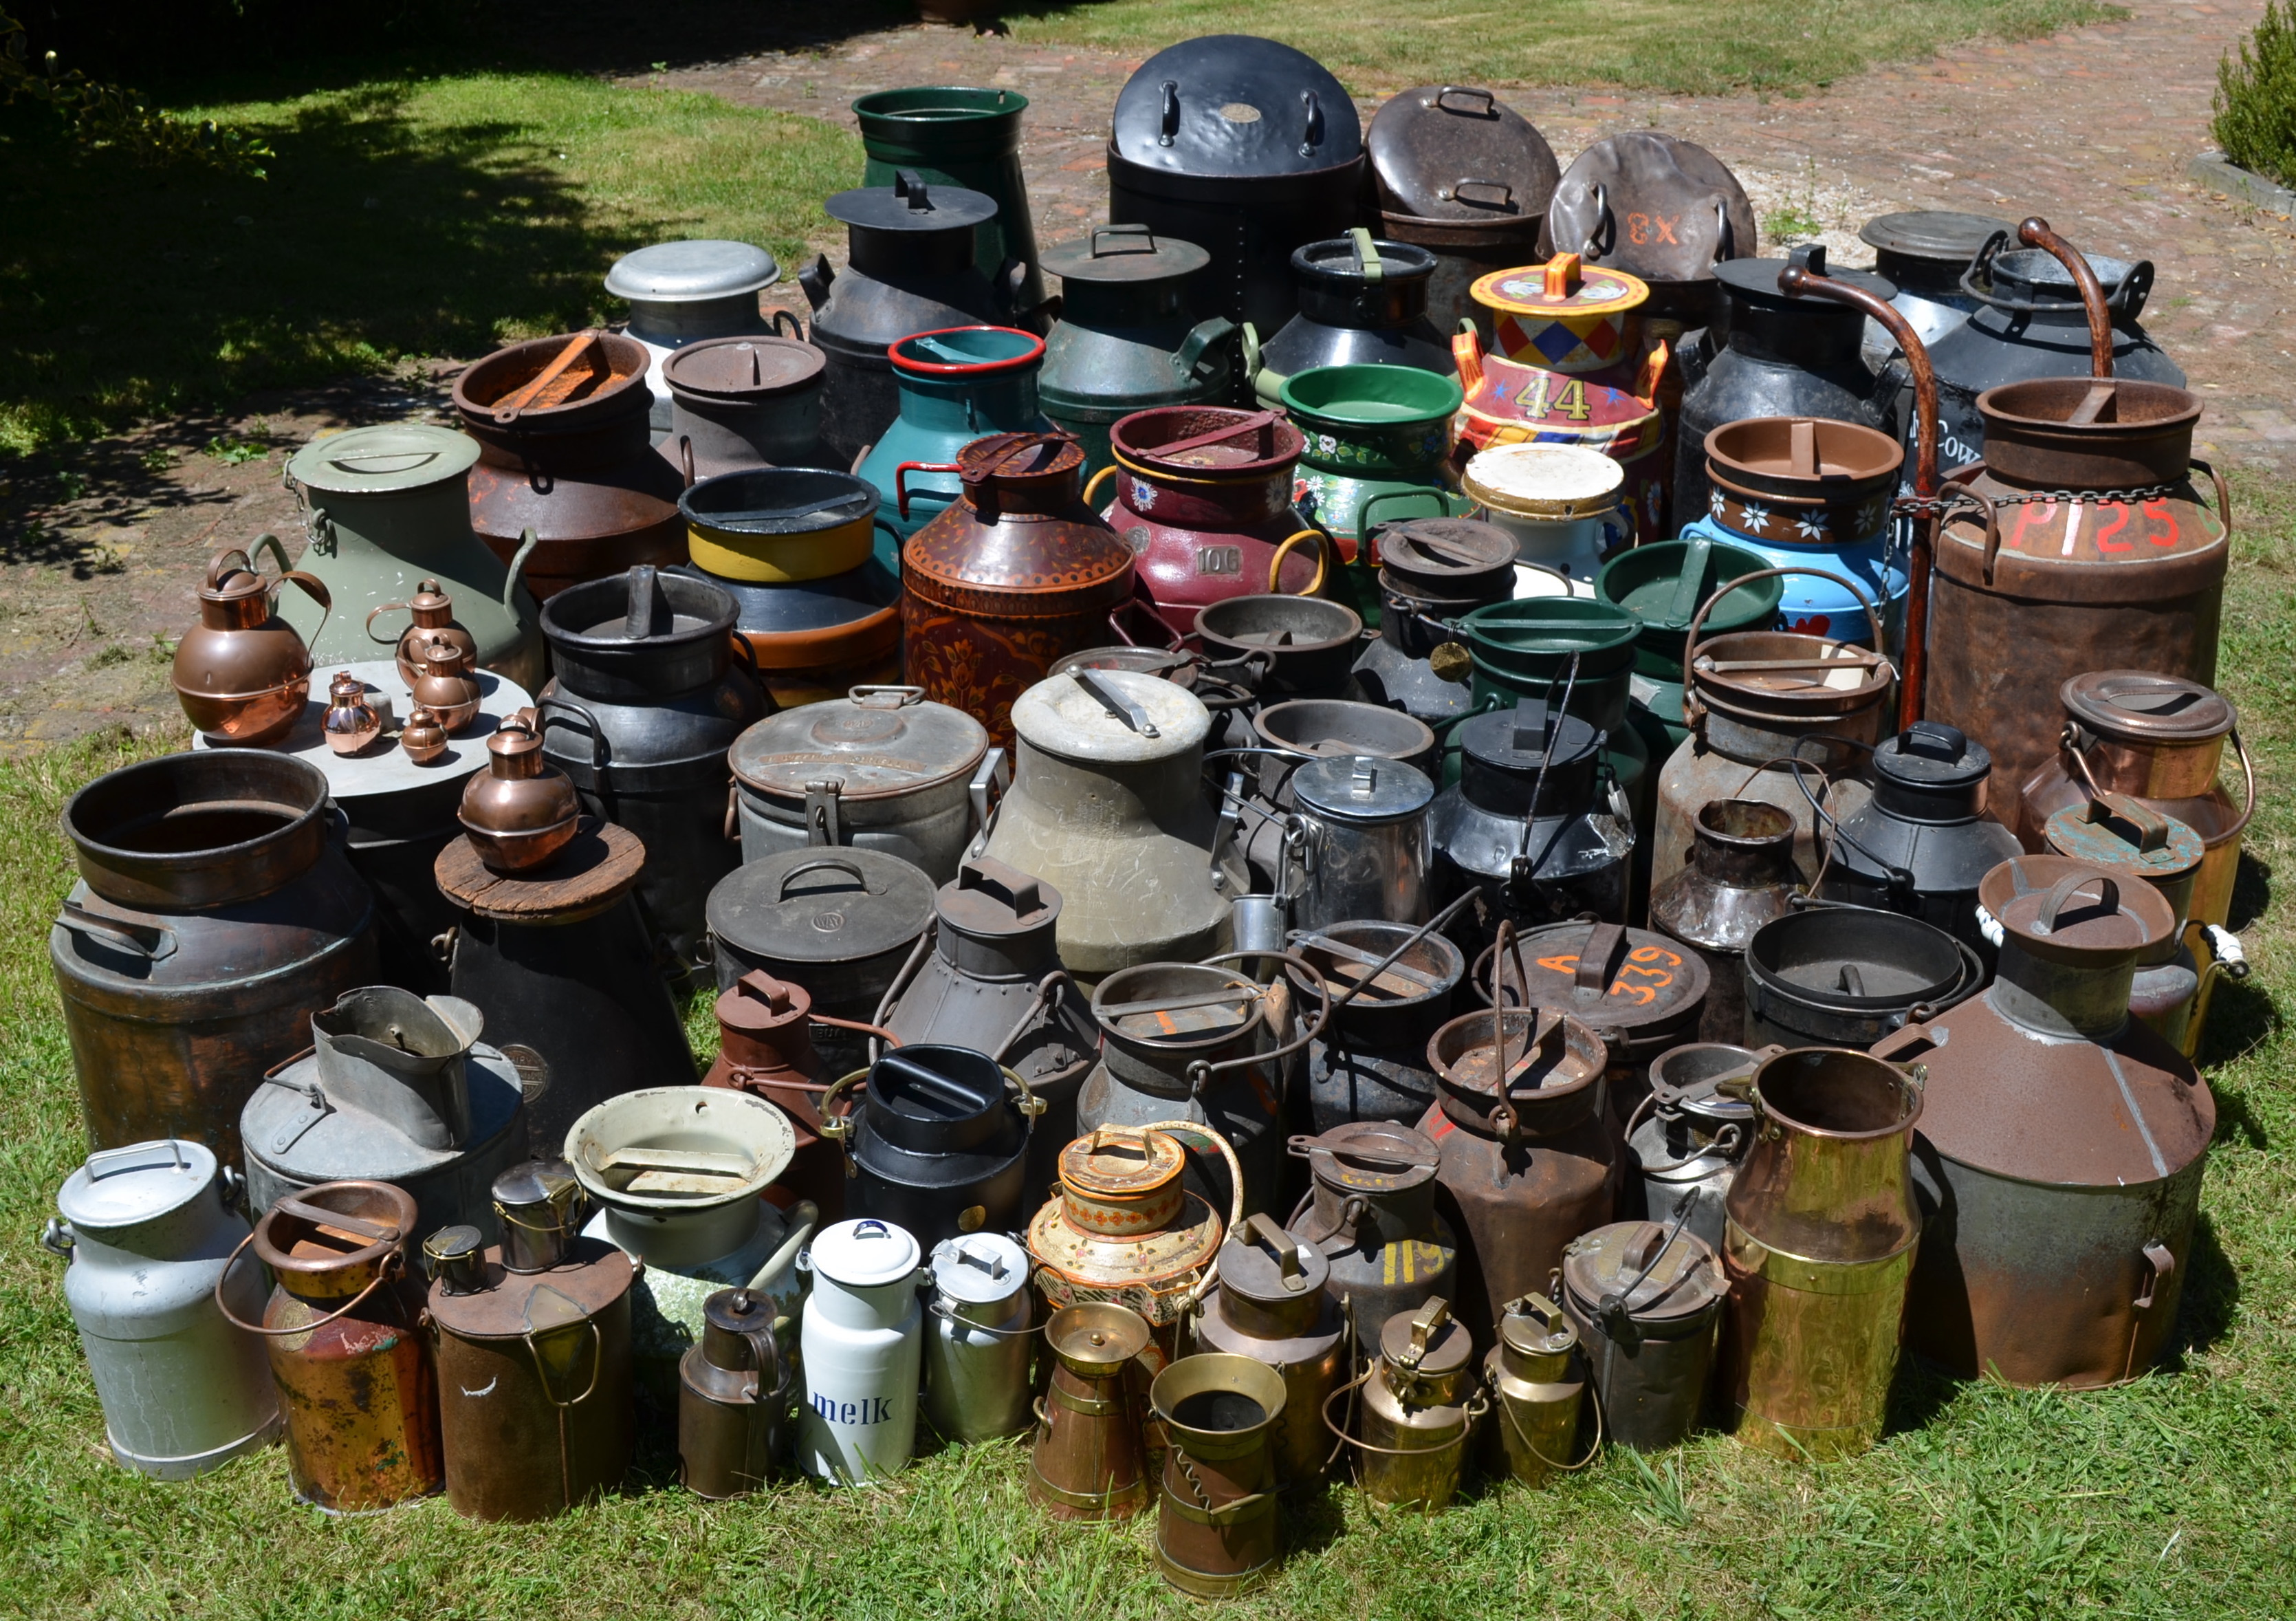 A portion of Ian Spellerberg's collection of milk cans.